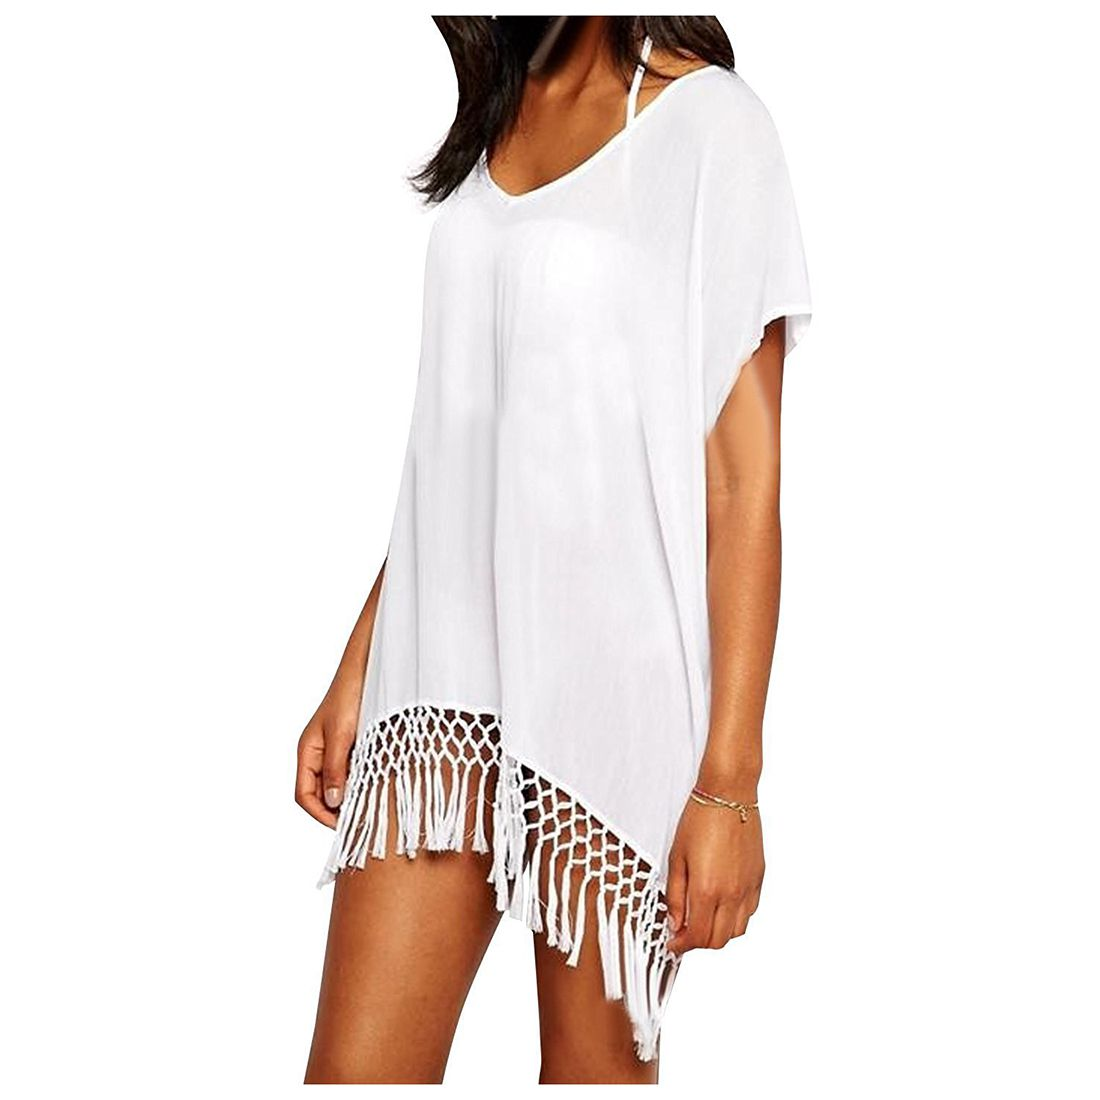 New Sale Womens Tassel Oversized Beach Cover Up Swimsuit Bathing Suit Beach Dress White